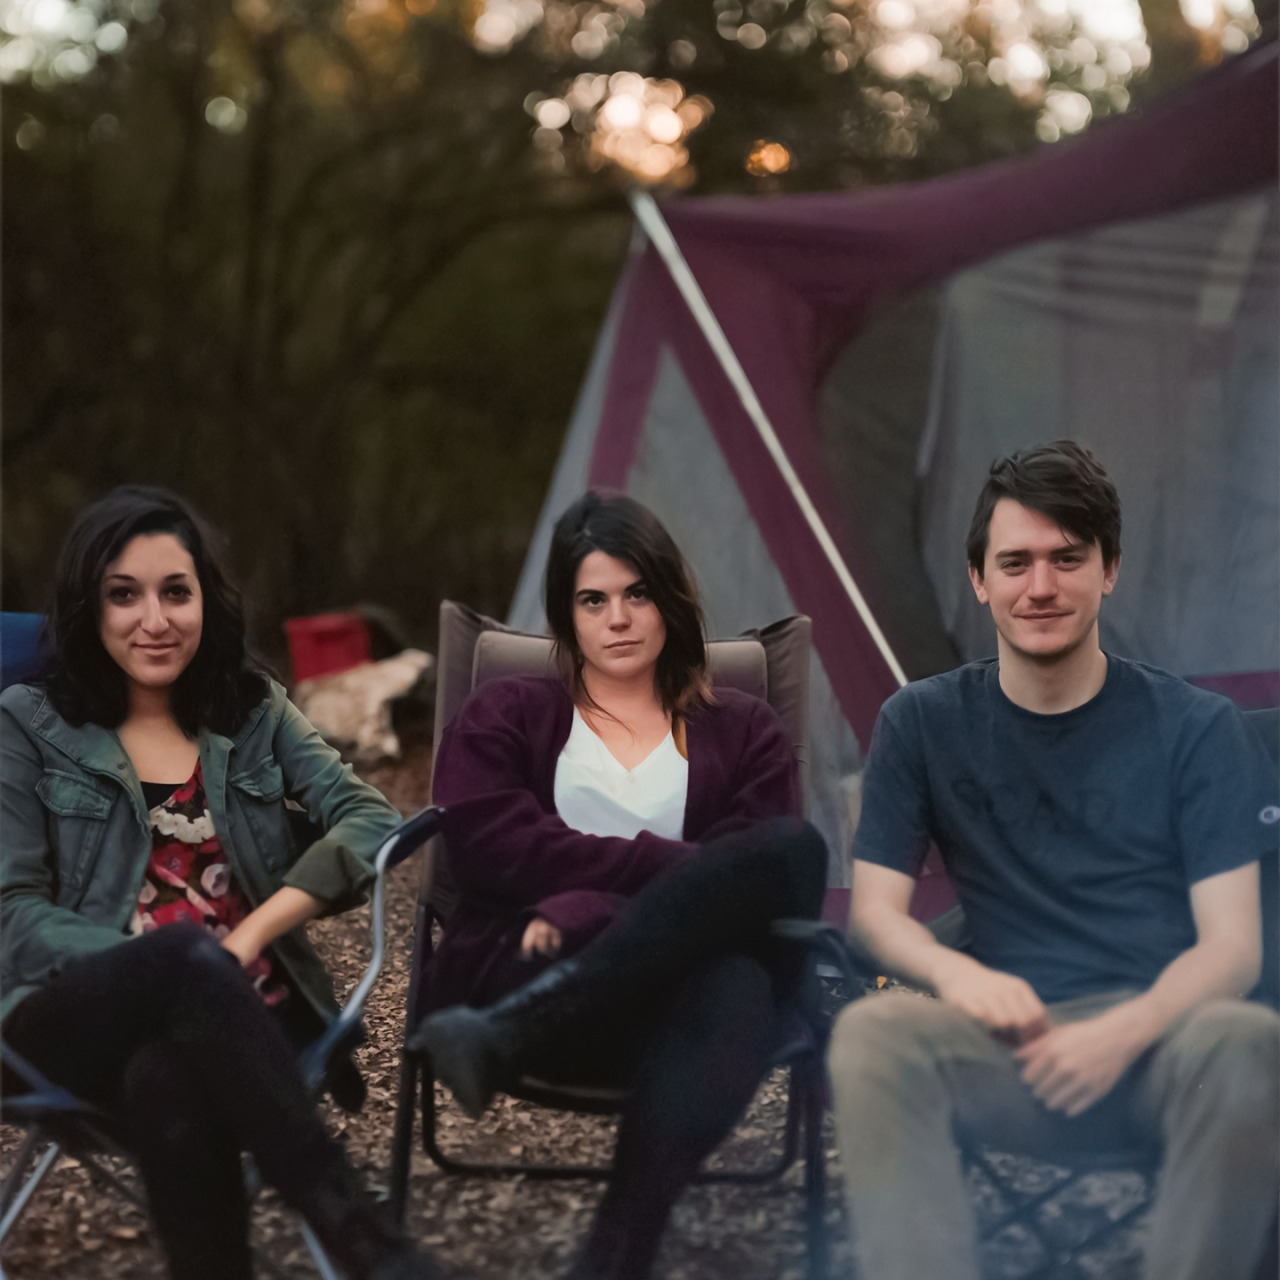 Me and some of my friends on a camping trip. Photo credit to Joanna Kulesza.